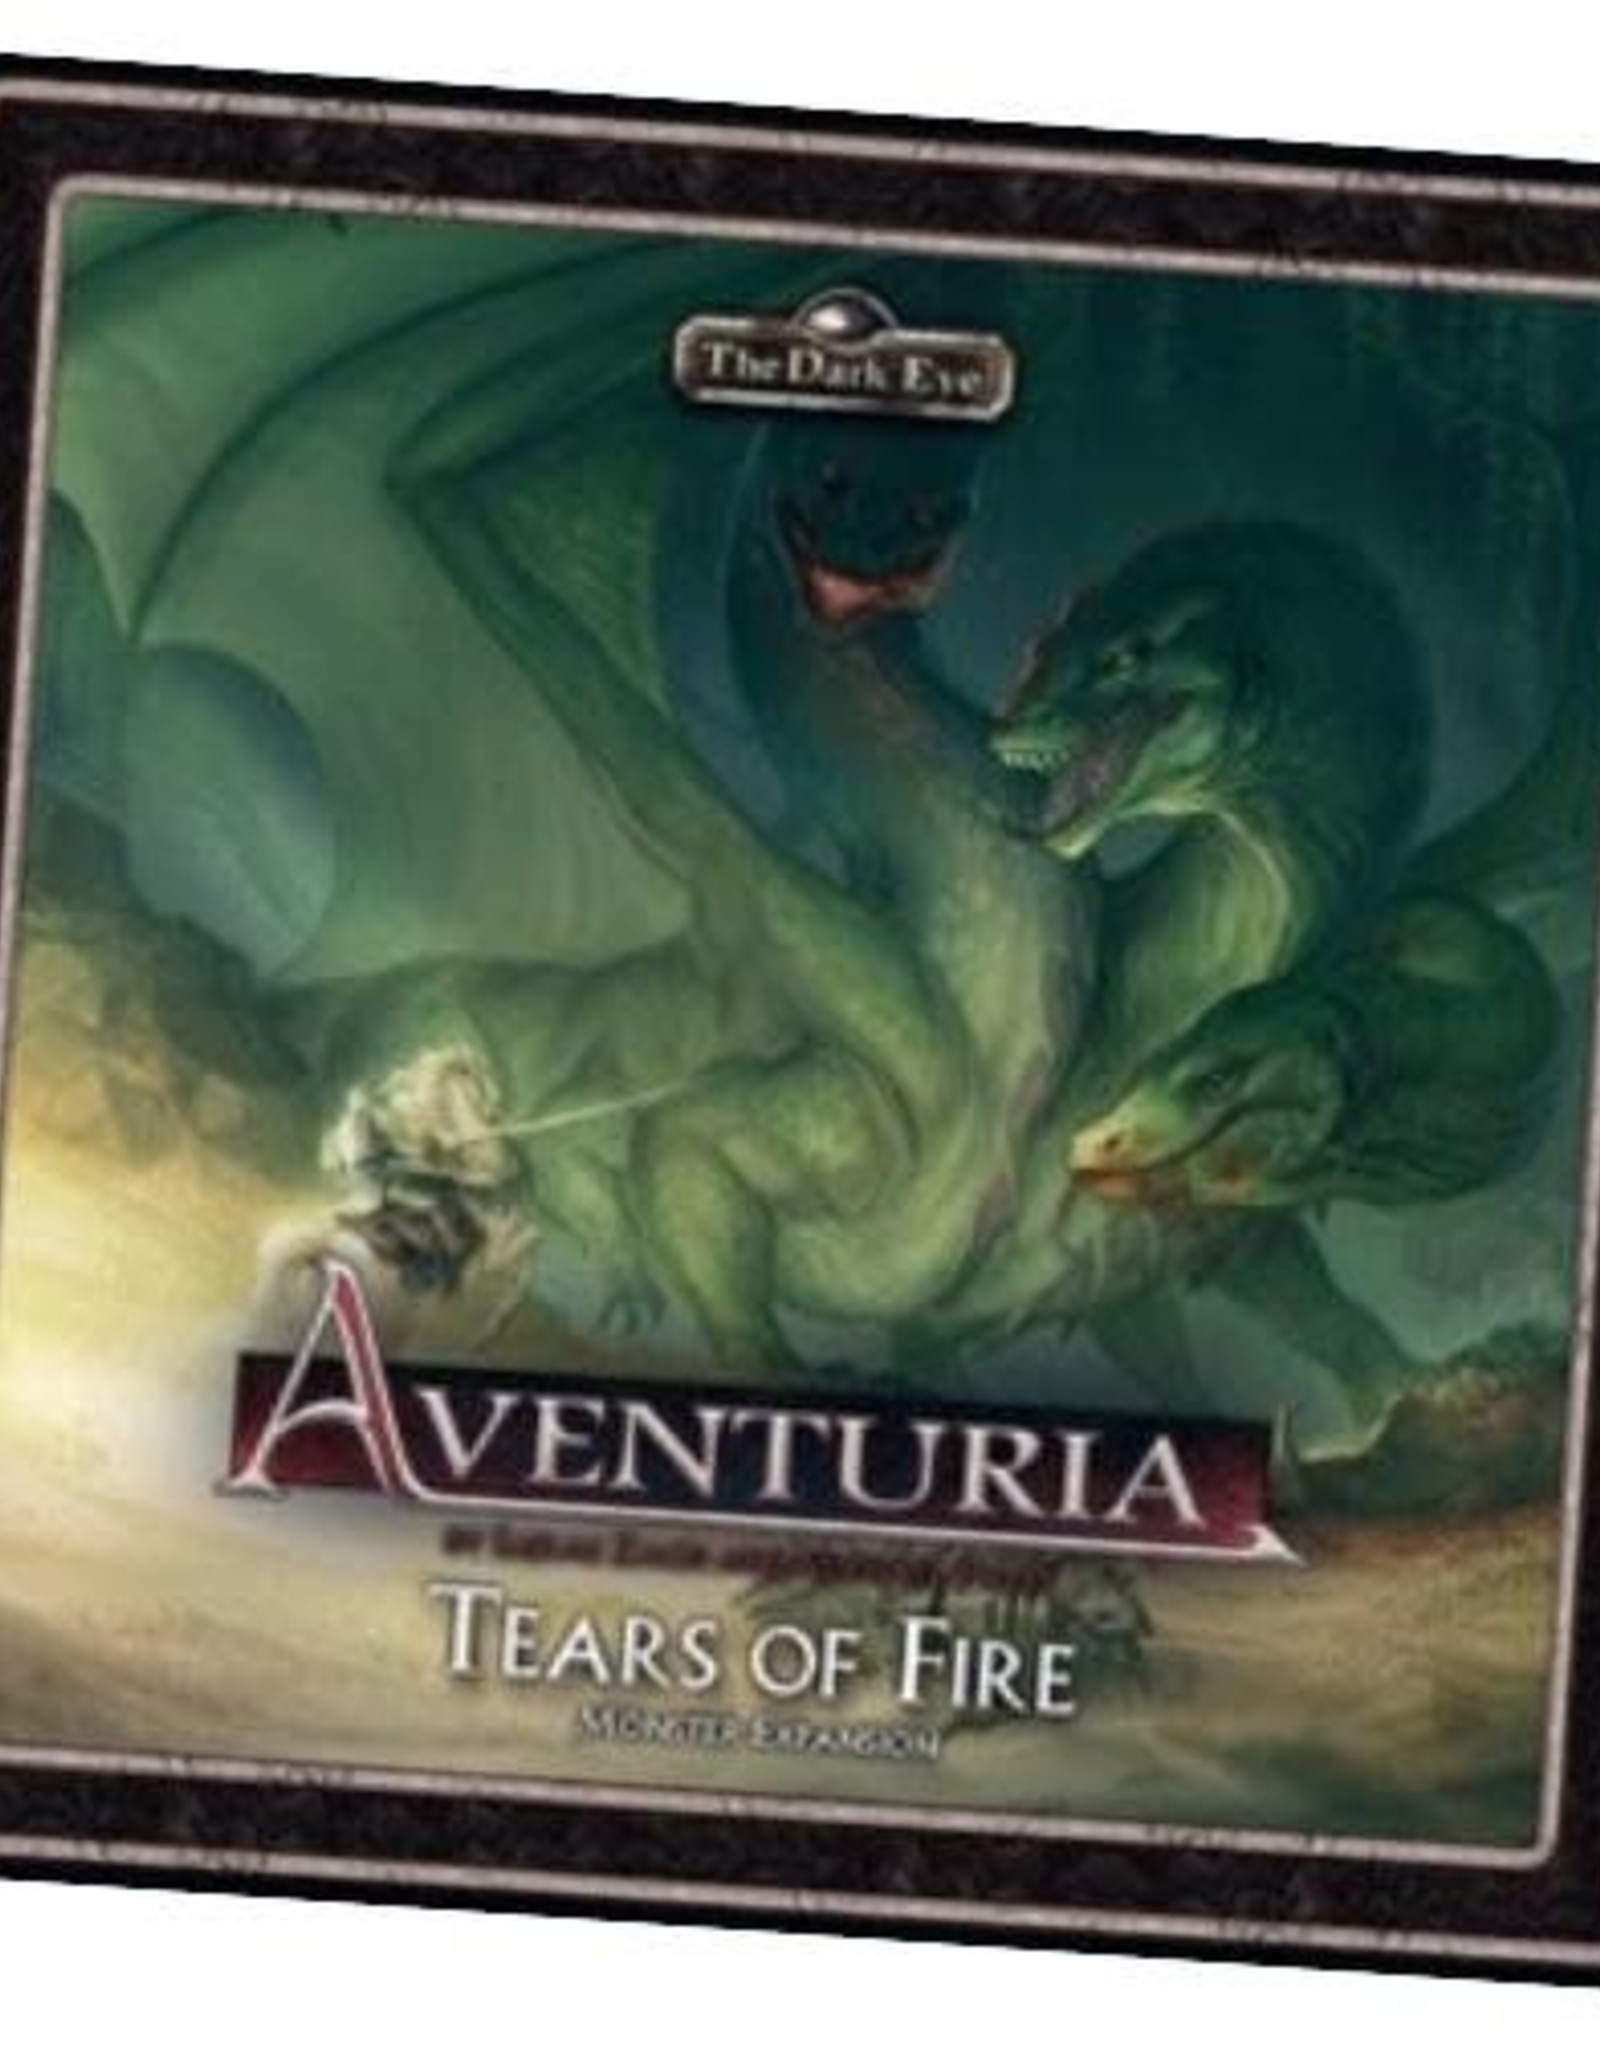 The Dark Eye: Aventuria Adventure Card Game - Tears of Fire Expansion